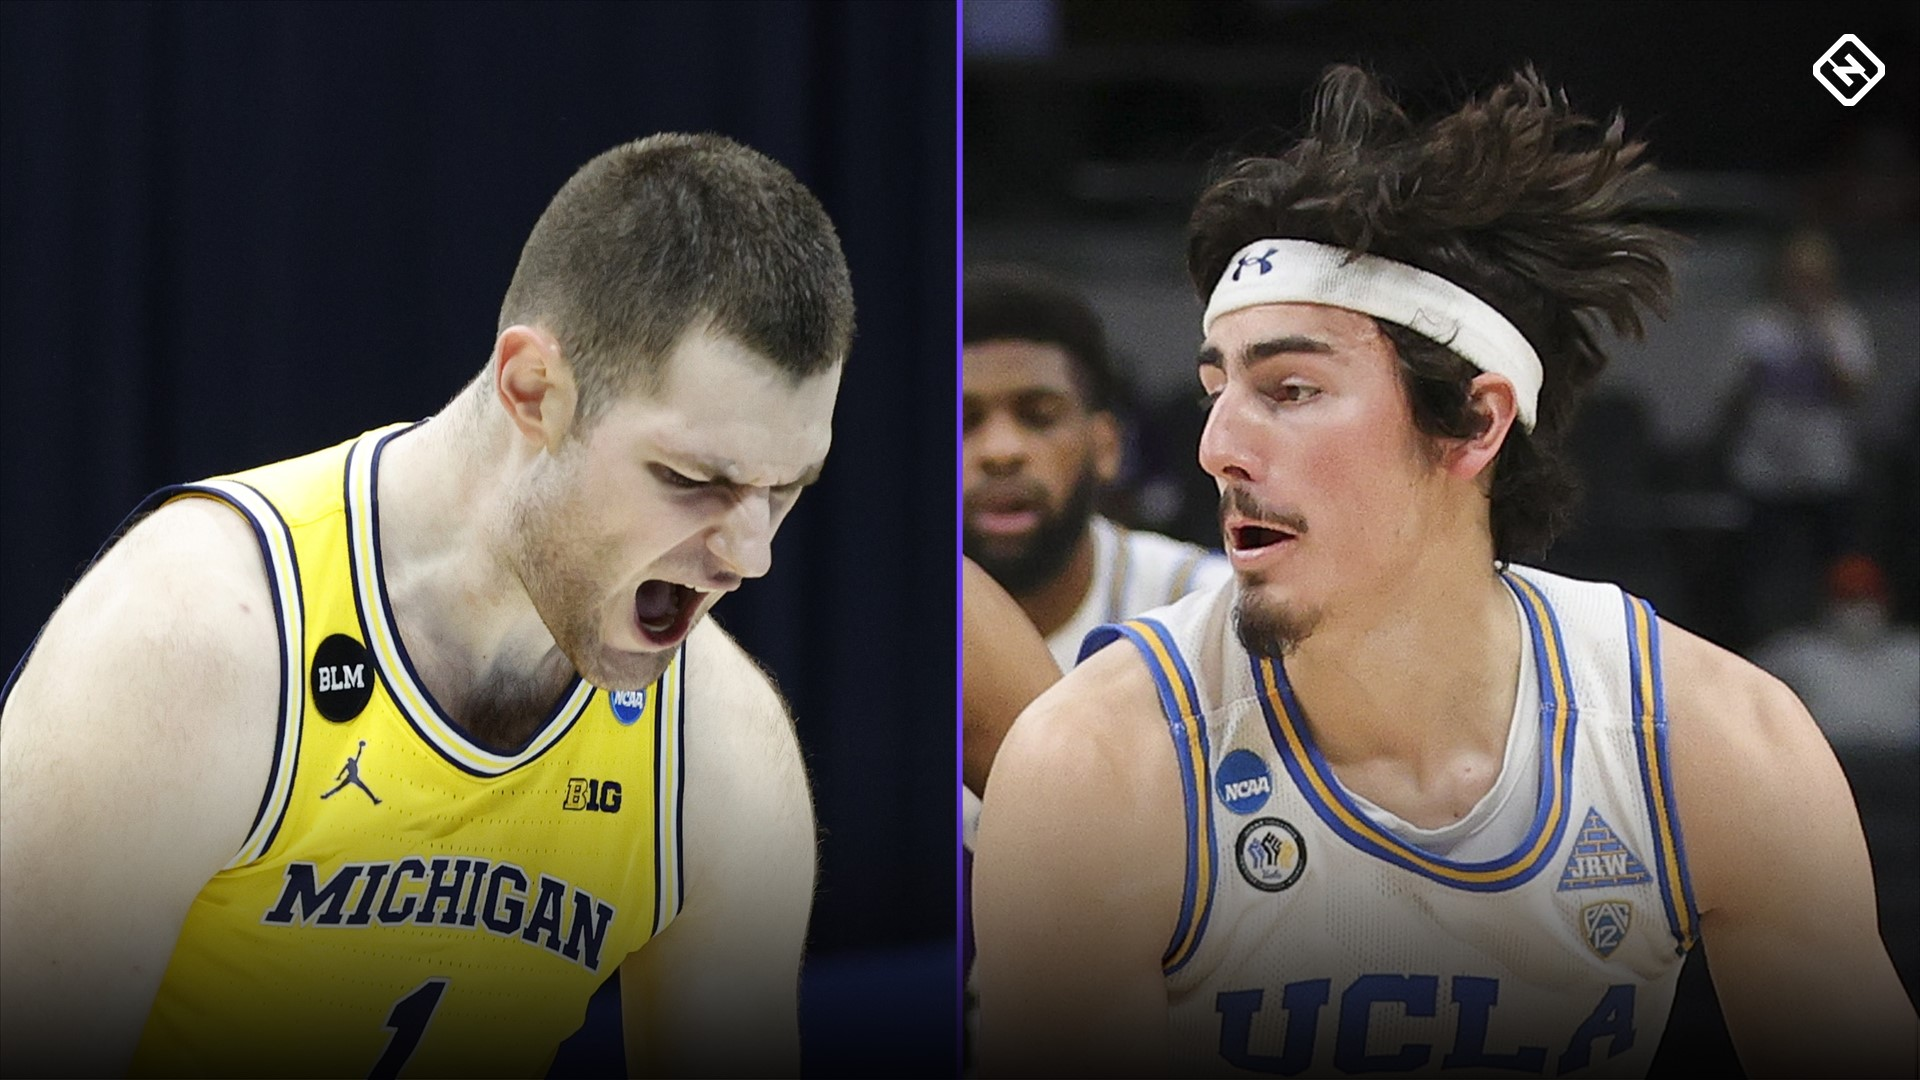 Michigan Vs.  UCLA live score, updates, highlights of the March Madness Elite Eight game